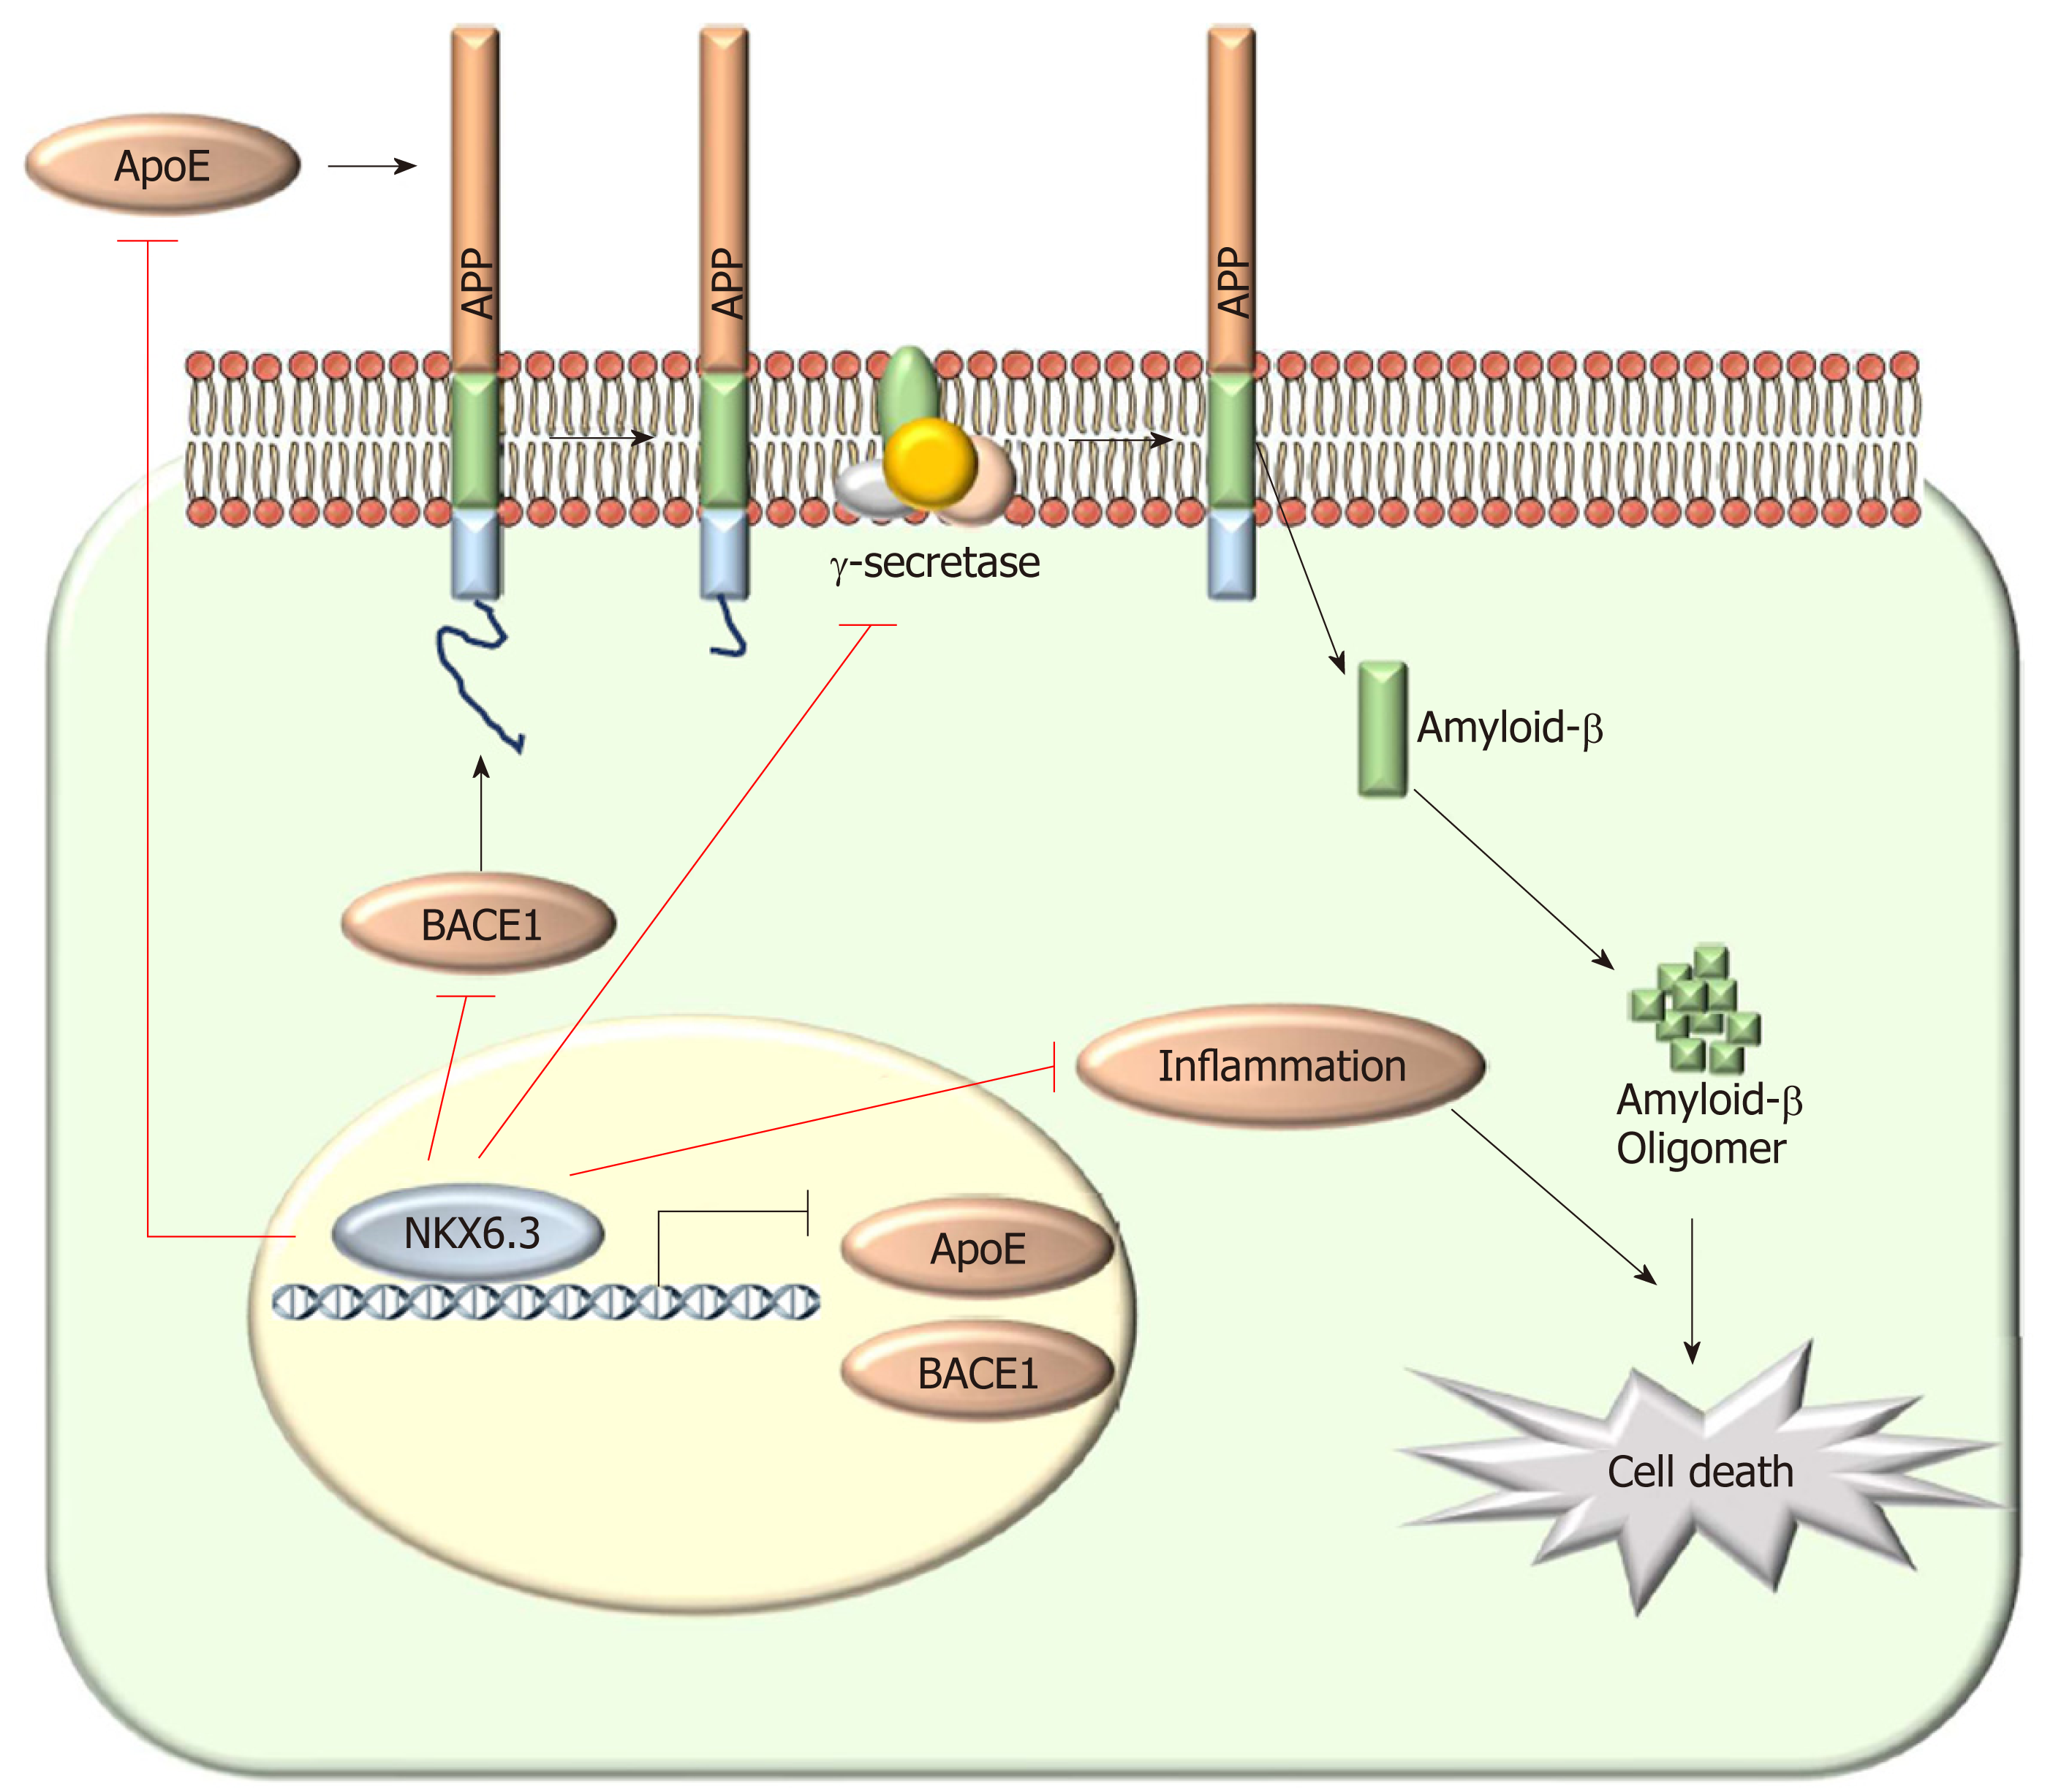 nkx6 3 protects against gastric mucosal atrophy by downregulating βfigure 6 schematic model of the role of nkx6 3 in gastric mucosal atrophy in gastric mucosal cells, nkx6 3 prevents gastric mucosal atrophy by regulating